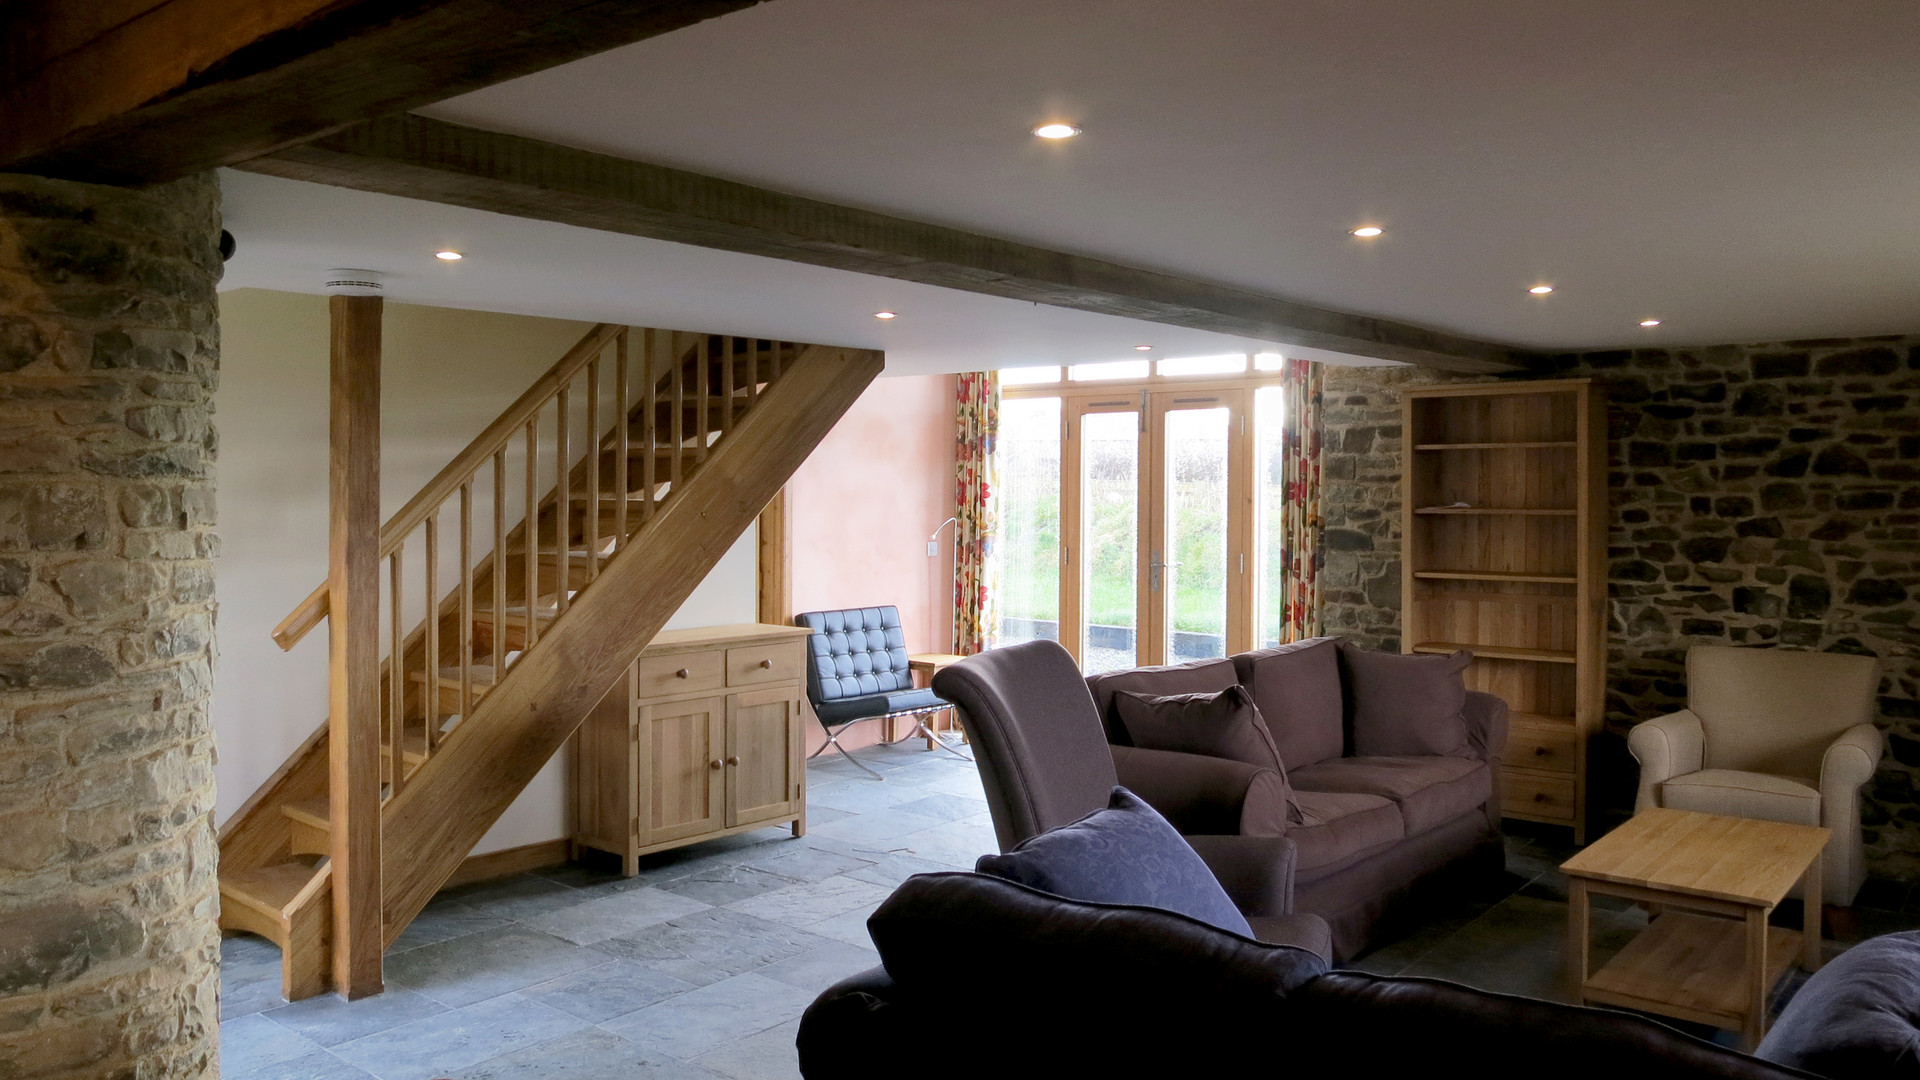 Interior architectural photo of barn conversion in Devon